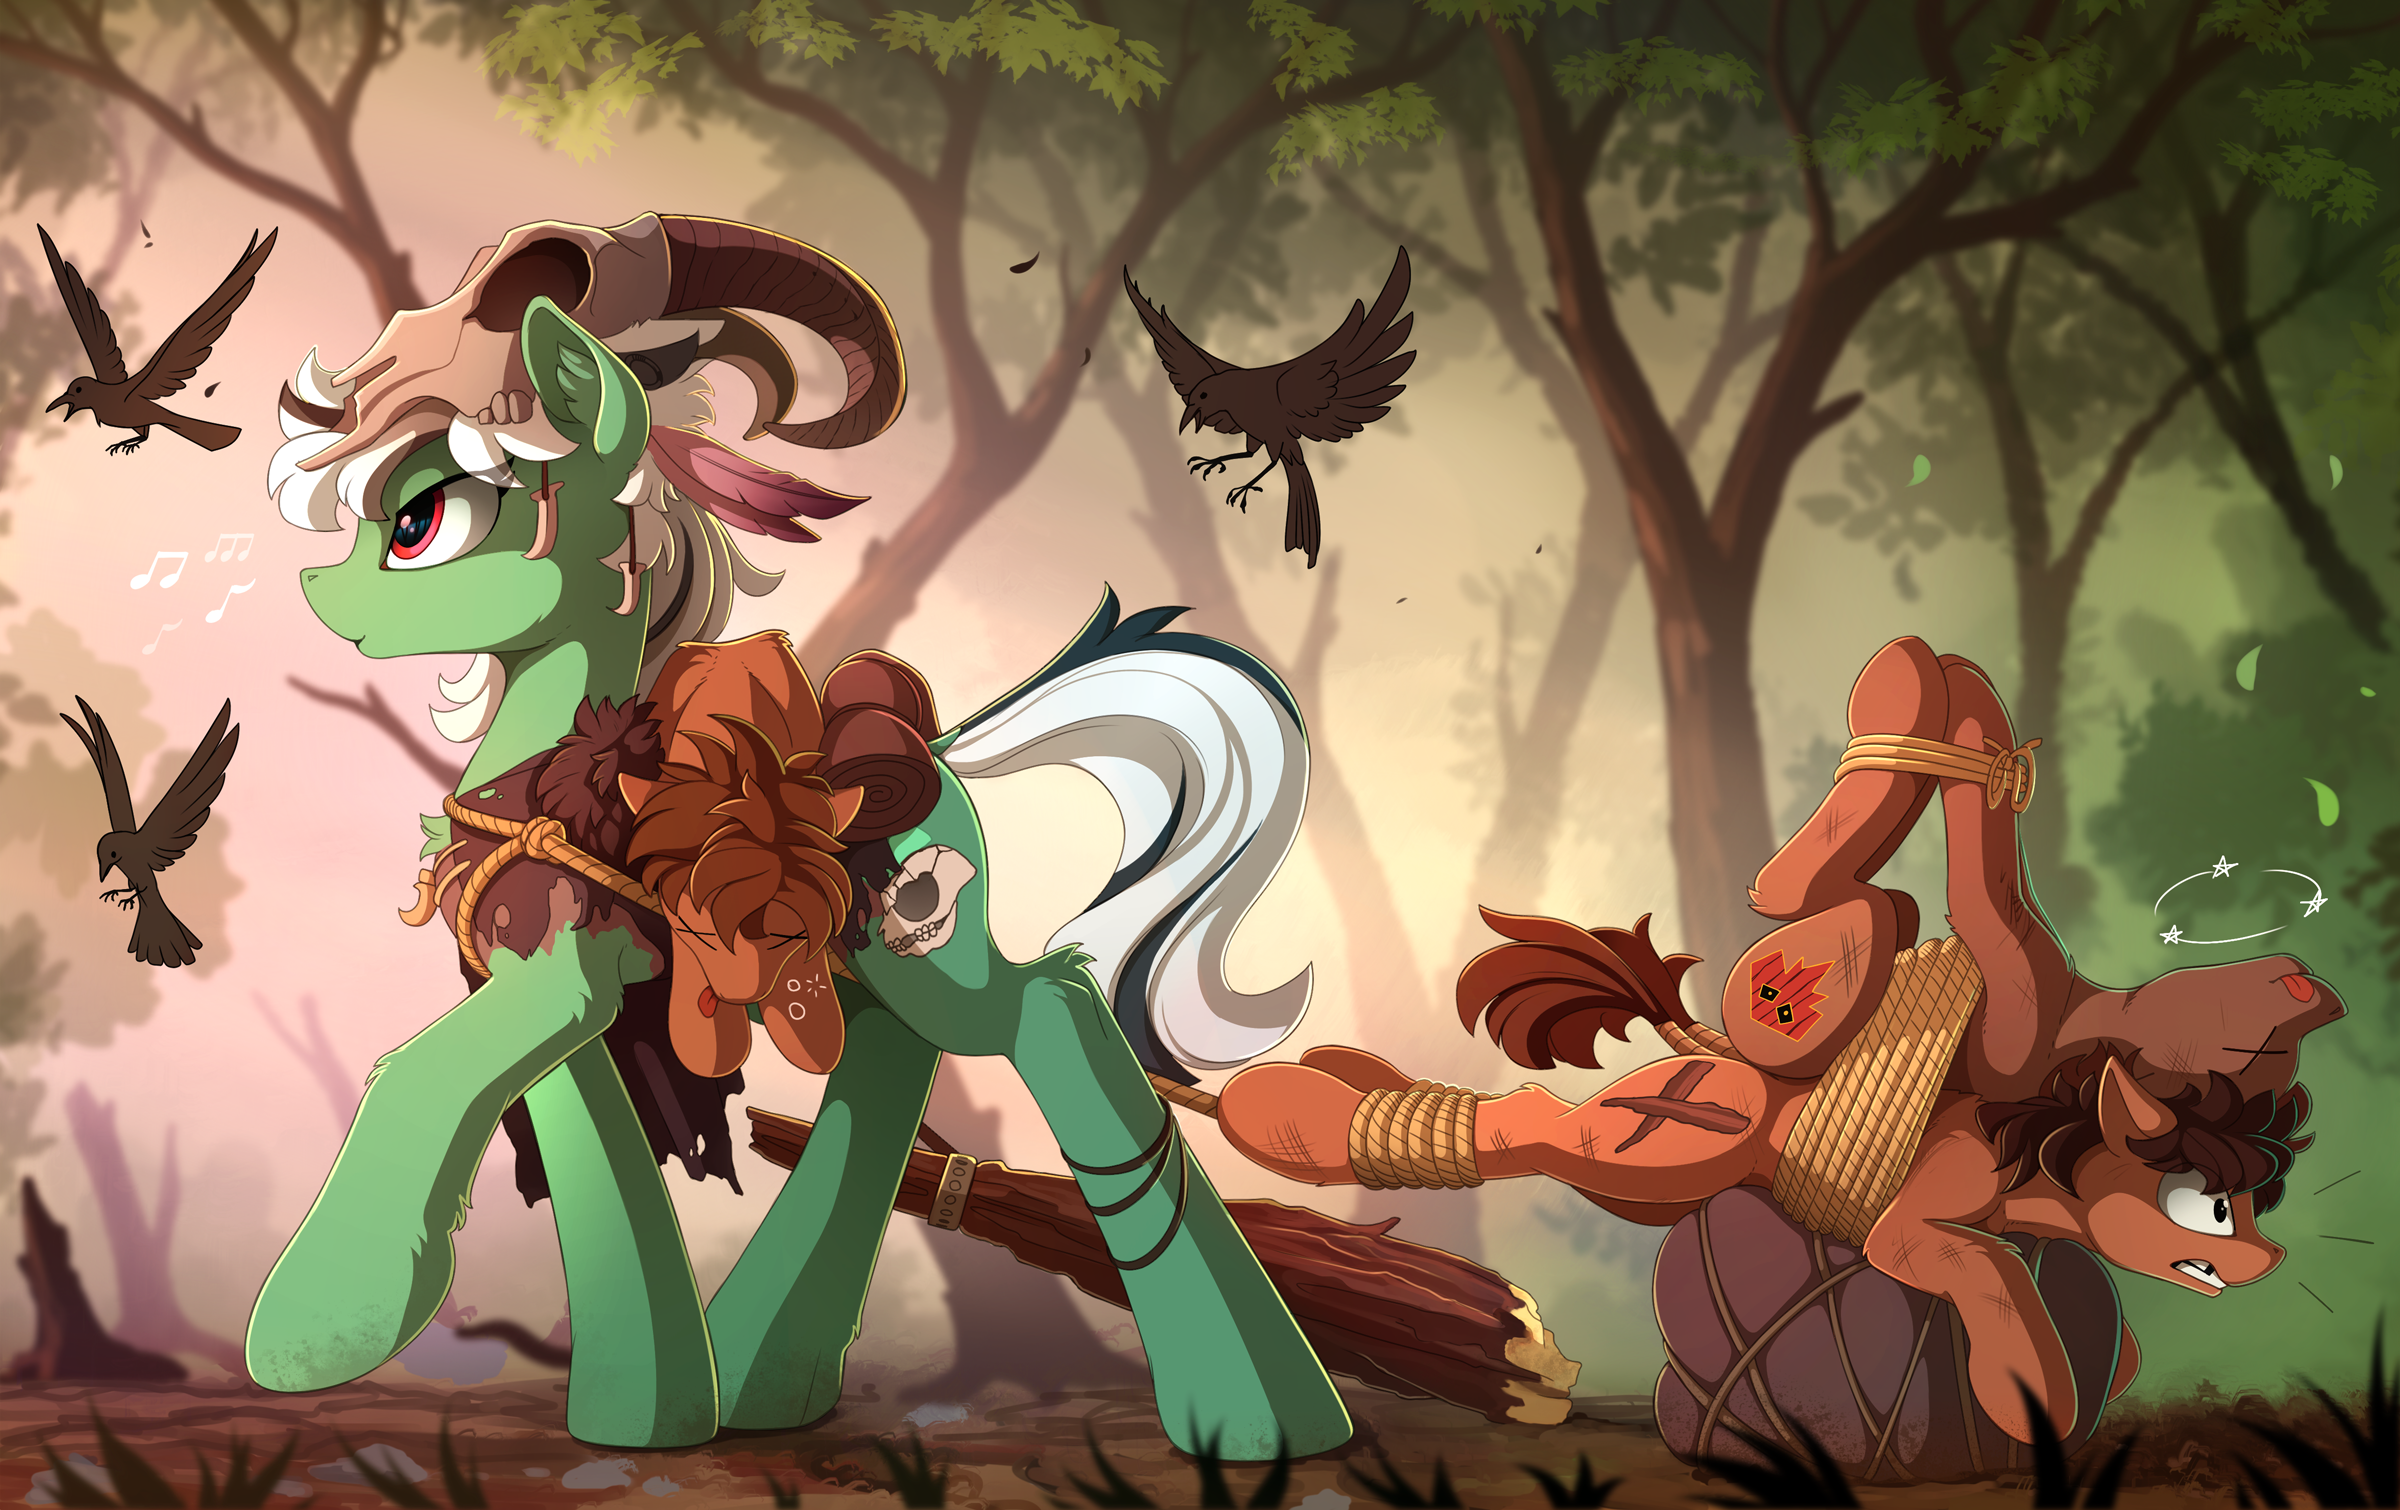 e926 avian bird brown_hair cutie_mark fan_character feral flying fur green_fur group hair hi_res hooves my_little_pony red_eyes rope standing white_hair yakovlev-vad